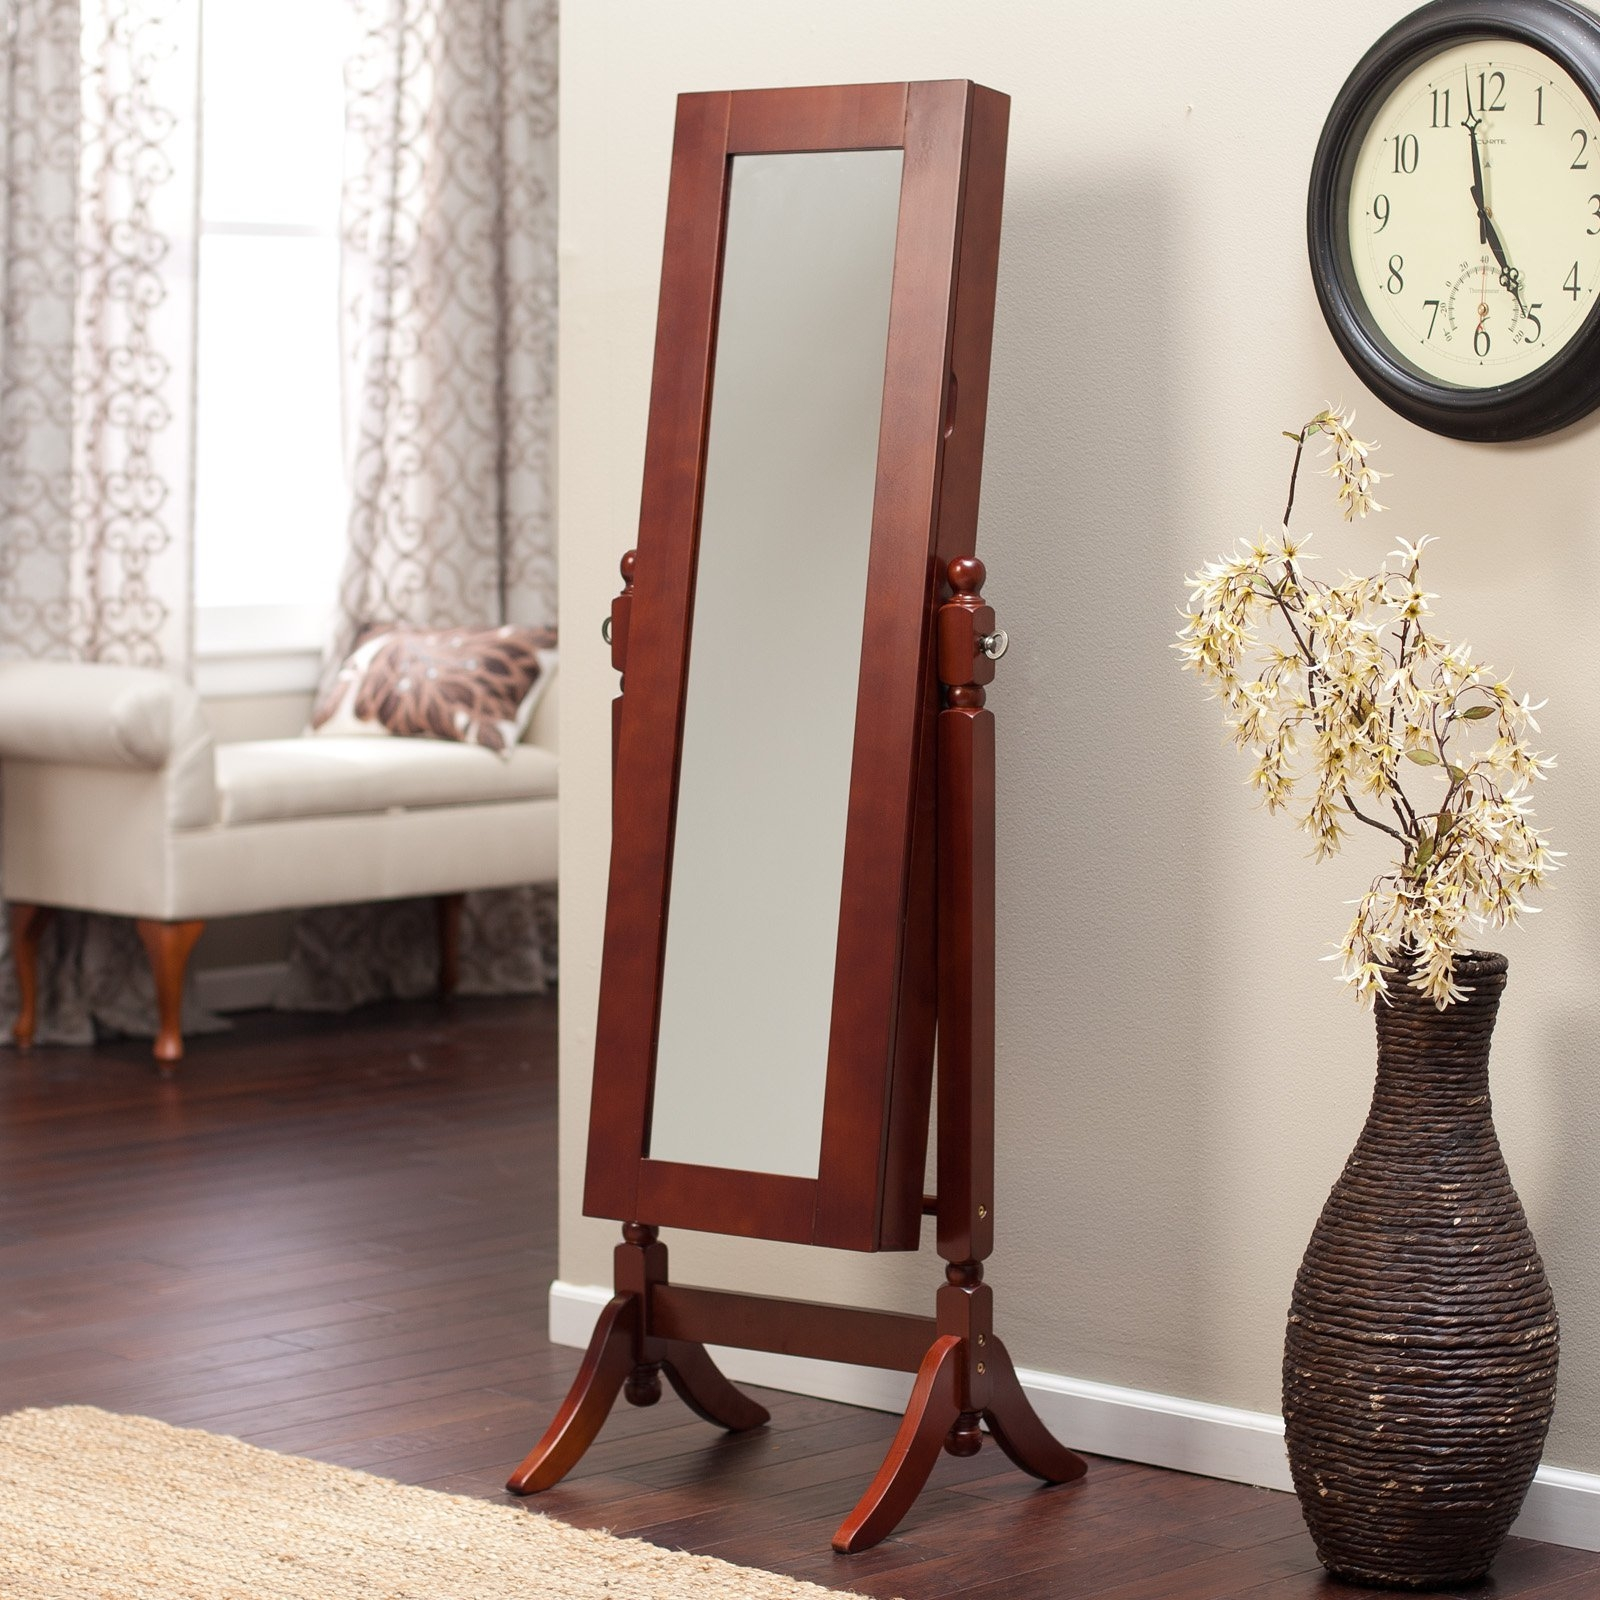 Heritage Jewelry Armoire Cheval Mirror Cherry Walmart Regarding Cheval Freestanding Mirror (Image 12 of 15)